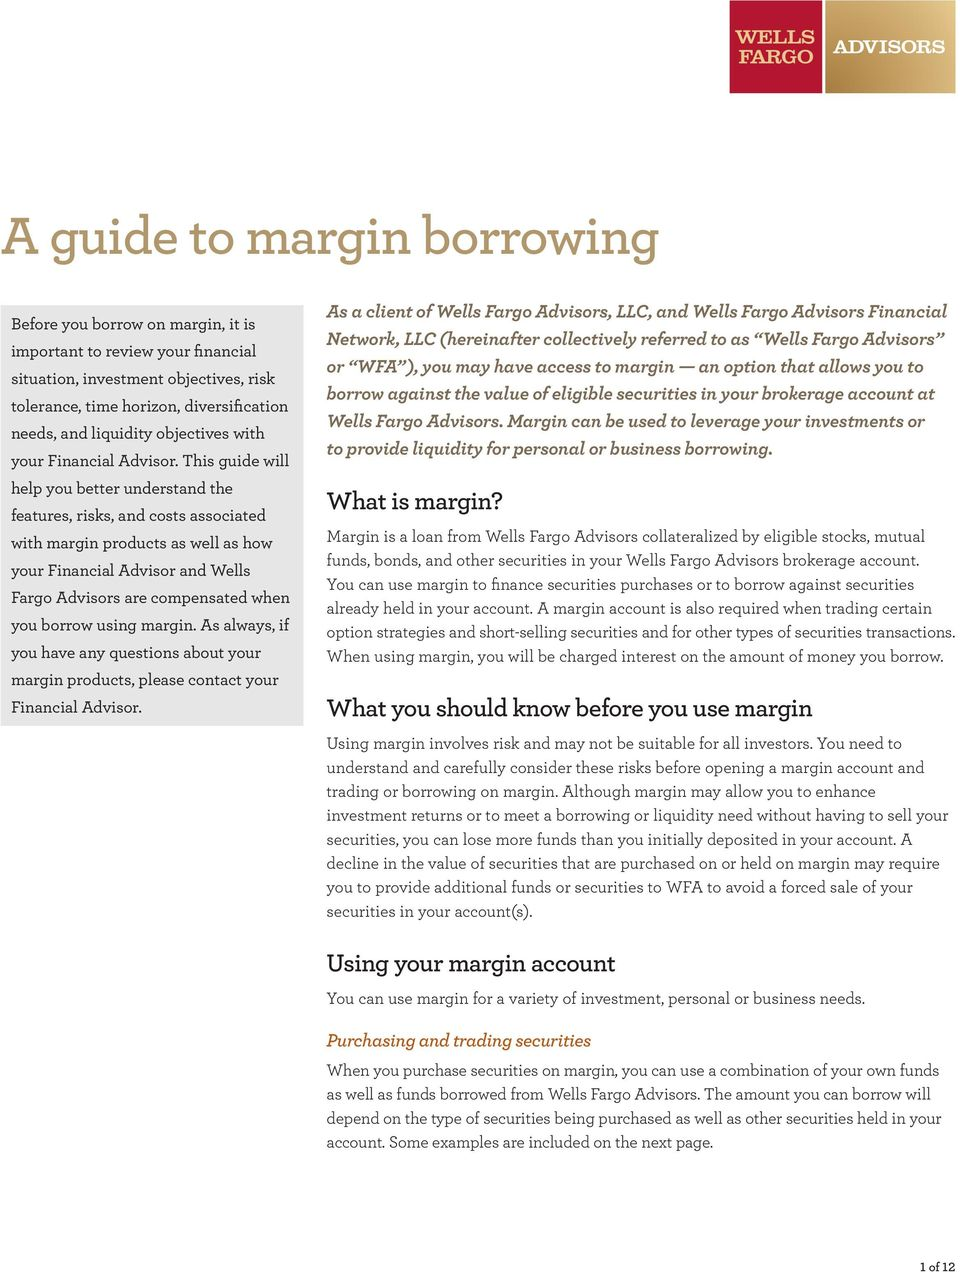 This guide will help you better understand the features, risks, and costs associated with margin products as well as how your Financial Advisor and Wells Fargo Advisors are compensated when you